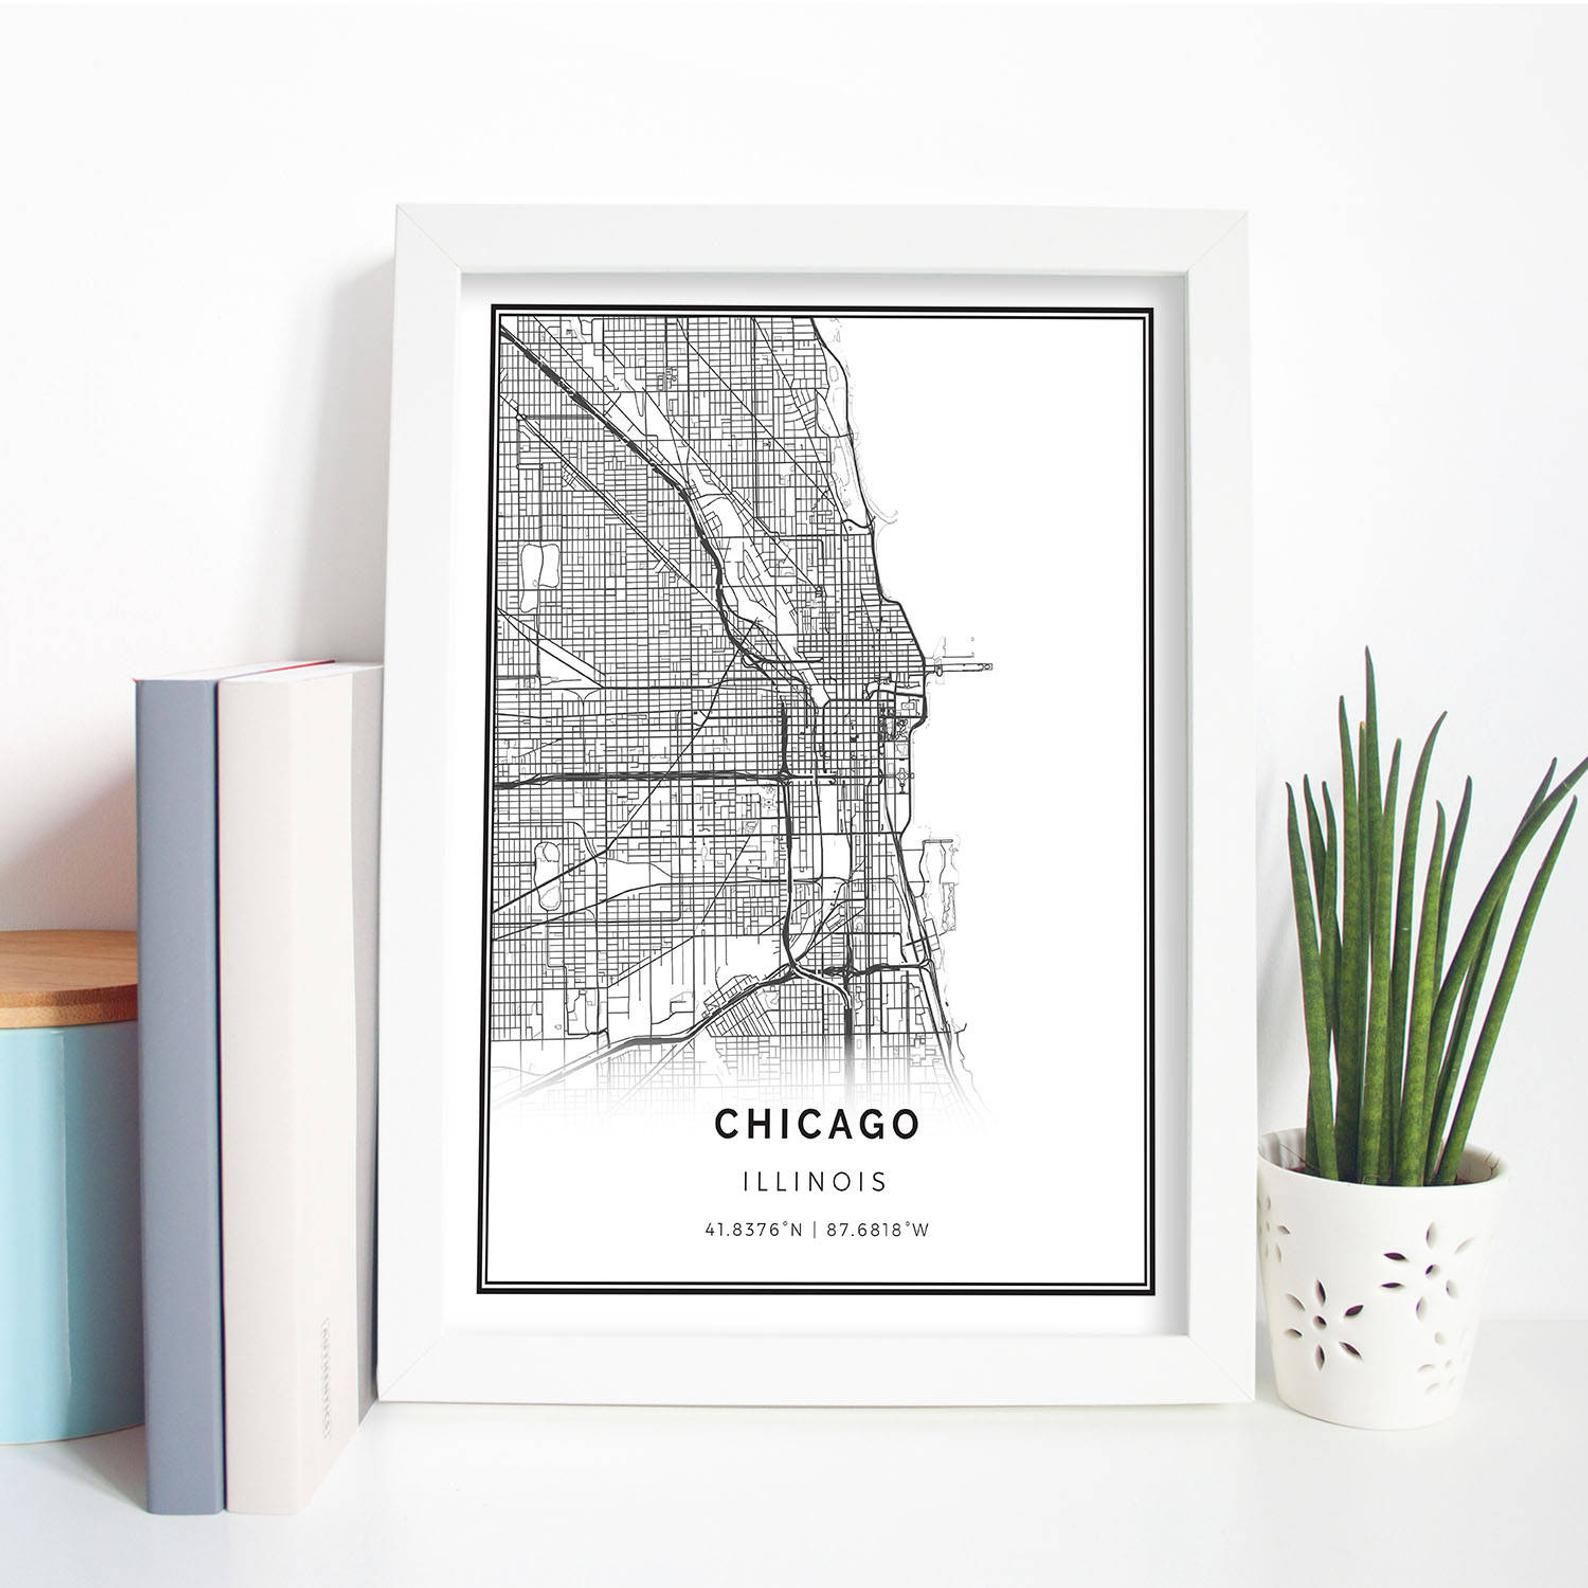 Chicago map poster print wall art Illinois gift printable ... on chicago illinois map, chicago road map with numbers, chicago map vintage, chicago wall murals, chicago sculpture wall colors, chicago map wallpaper, chicago street block numbers, chicago neighborhood map, chicago state map, chicago map fabric, chicago map glass, chicago map design, chicago map canvas, chicago skyline 2014, chicago wall decor, chicago black, chicago street map, chicago metro map, chicago map artwork, chicago map coasters,